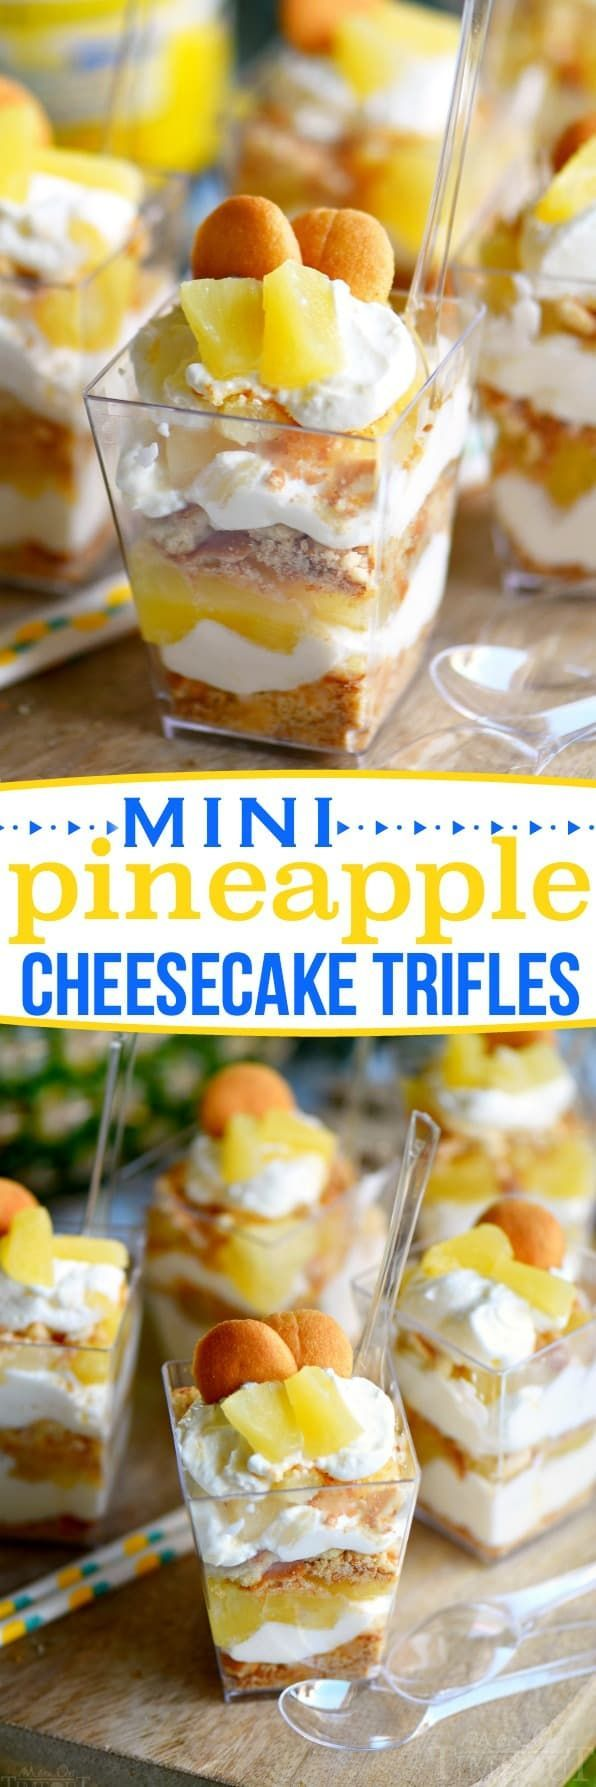 These Mini Pineapple Cheesecake Trifles are loaded with pineapple flavor! Perfect for an after-school snack, dessert, or party! // Mom On Timeout #pineapple #SharetheSunshine #ad